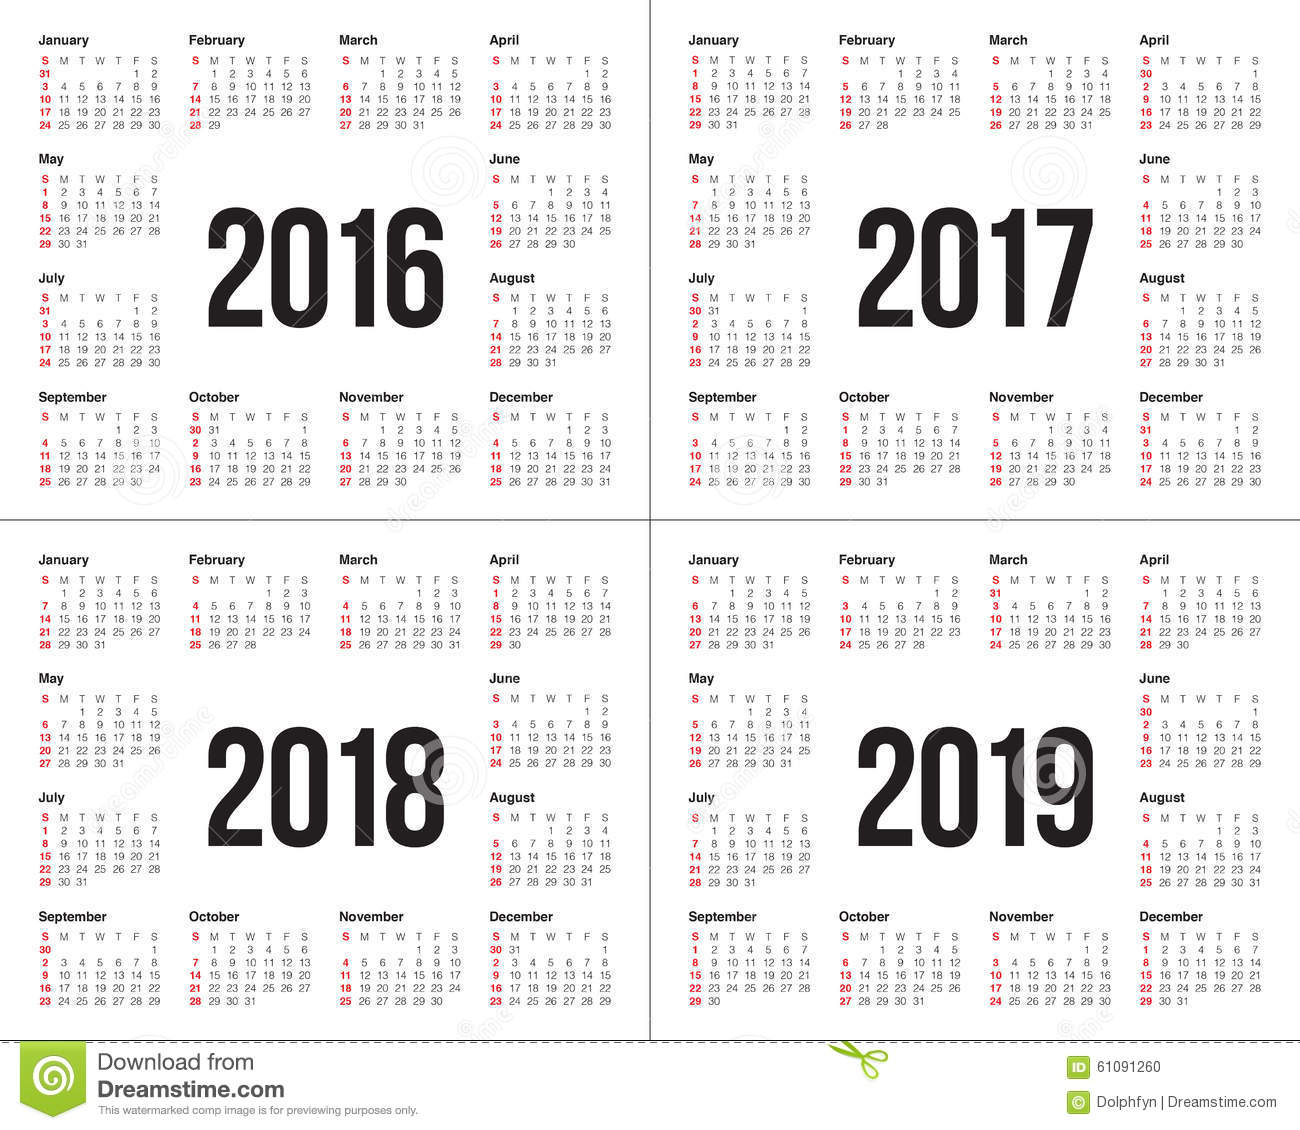 2019 And 2016 Calendars Calendar 2016 2017 2018 2019 Stock Vector   Illustration of 2016